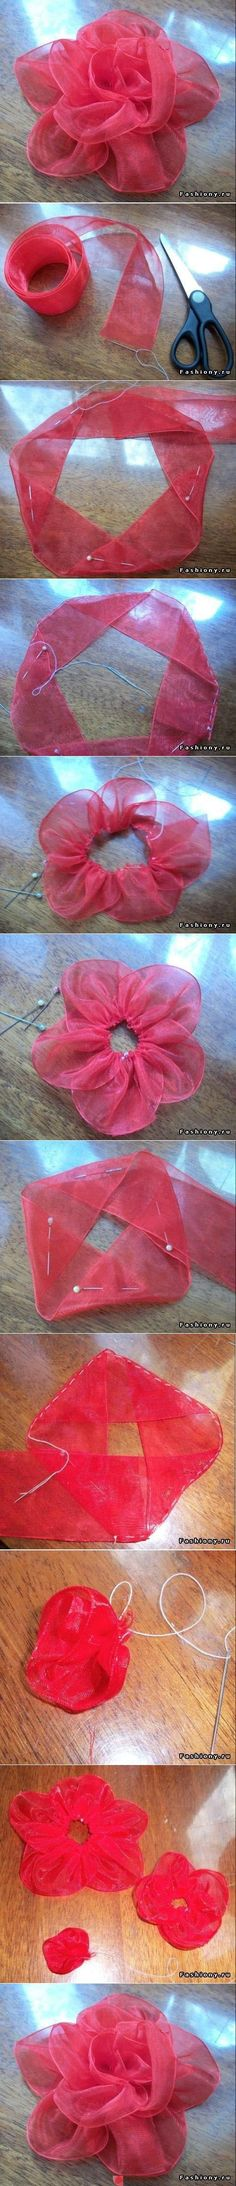 DIY Ribbon Tape Flower Tutorial in pictures Ribbon Art, Diy Ribbon, Fabric Ribbon, Ribbon Crafts, Flower Crafts, Ribbon Bows, Fabric Crafts, Sewing Crafts, Ribbon Flower